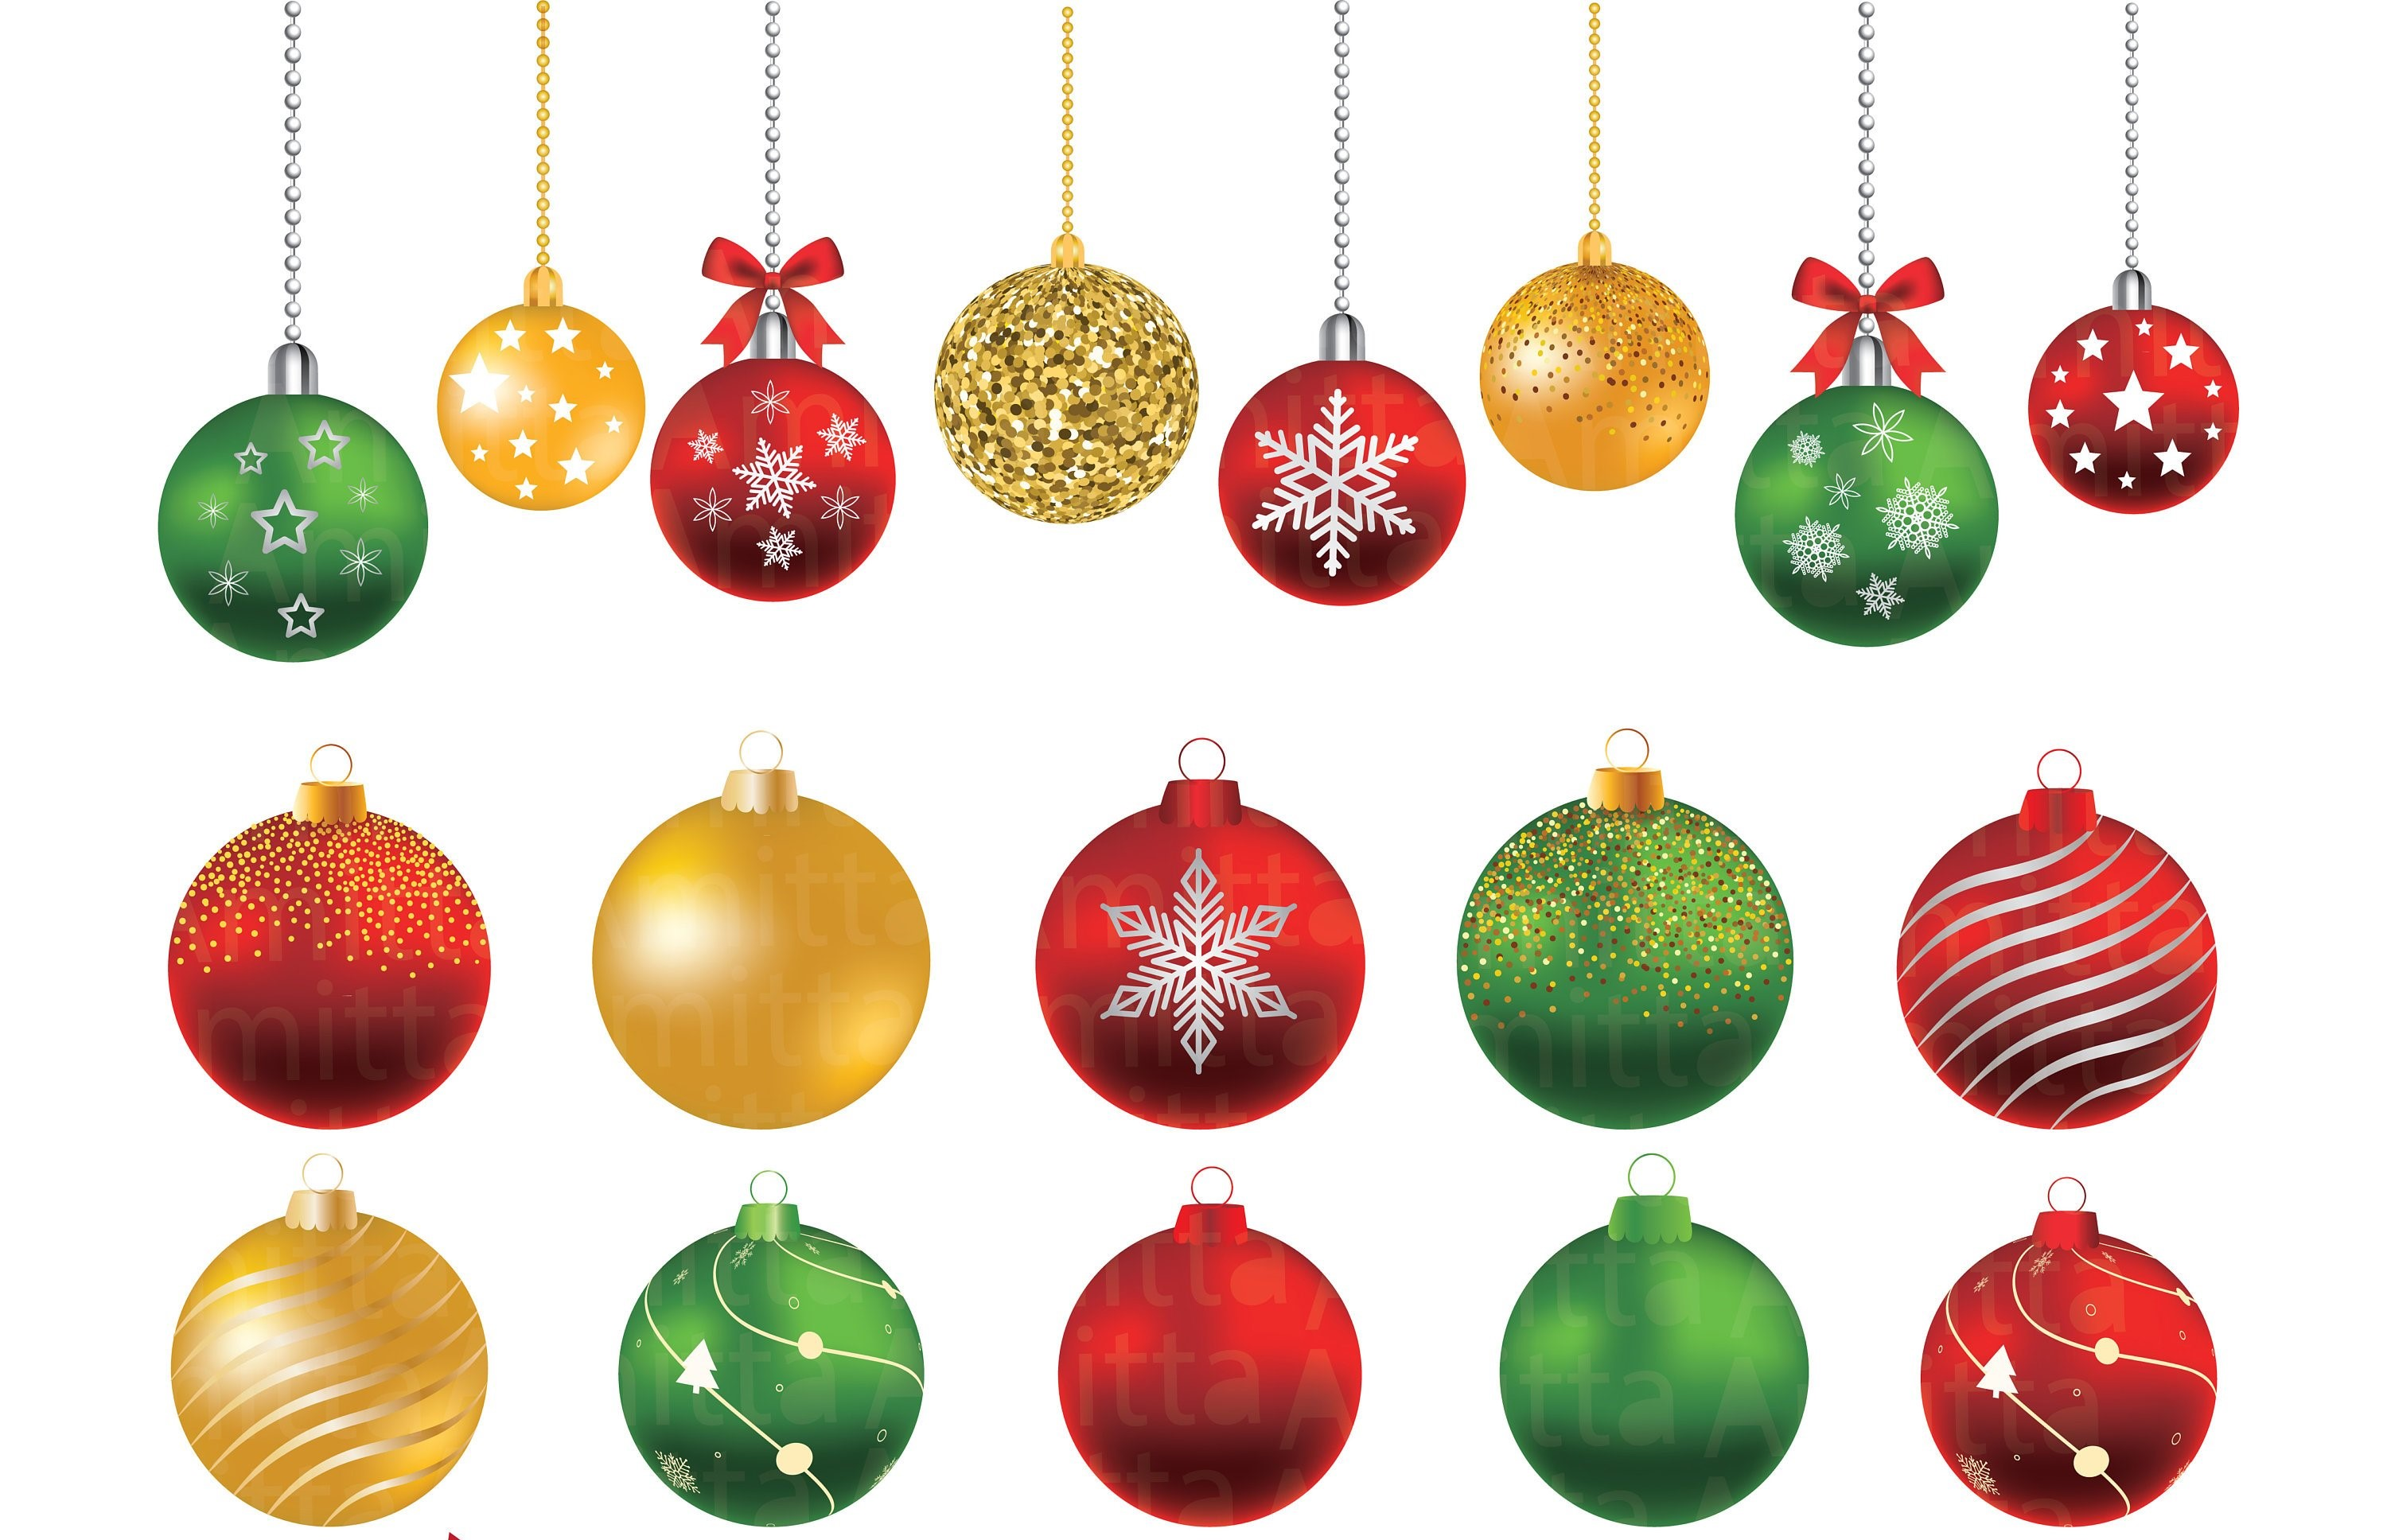 png library download Ornaments clipart. Christmas balls set